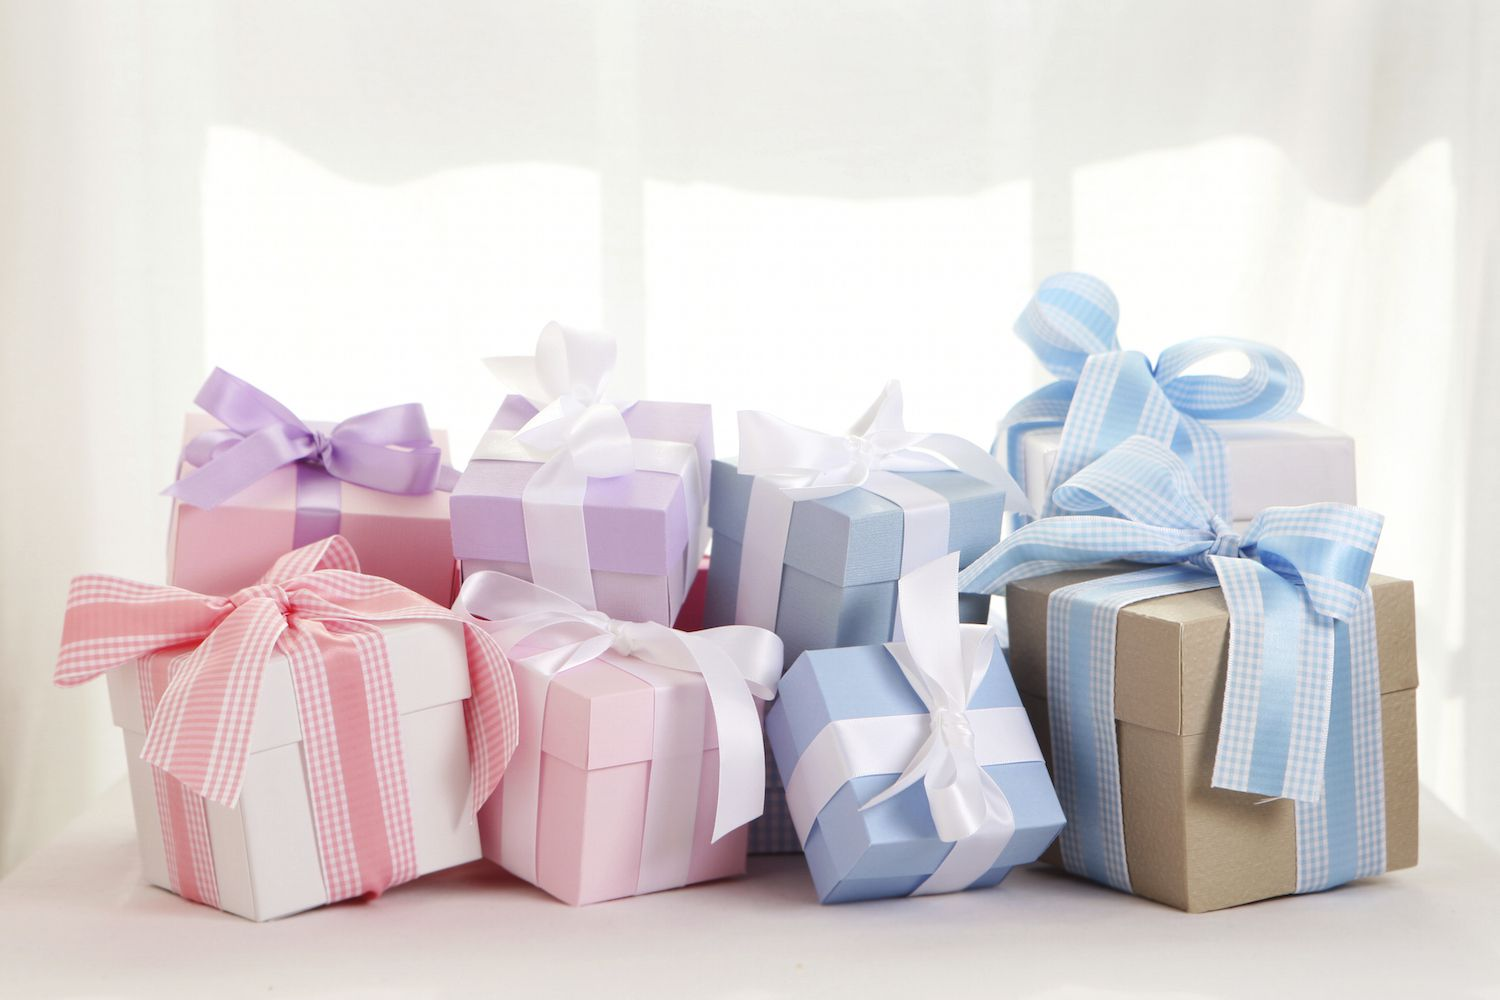 Where to buy gifts for babies?